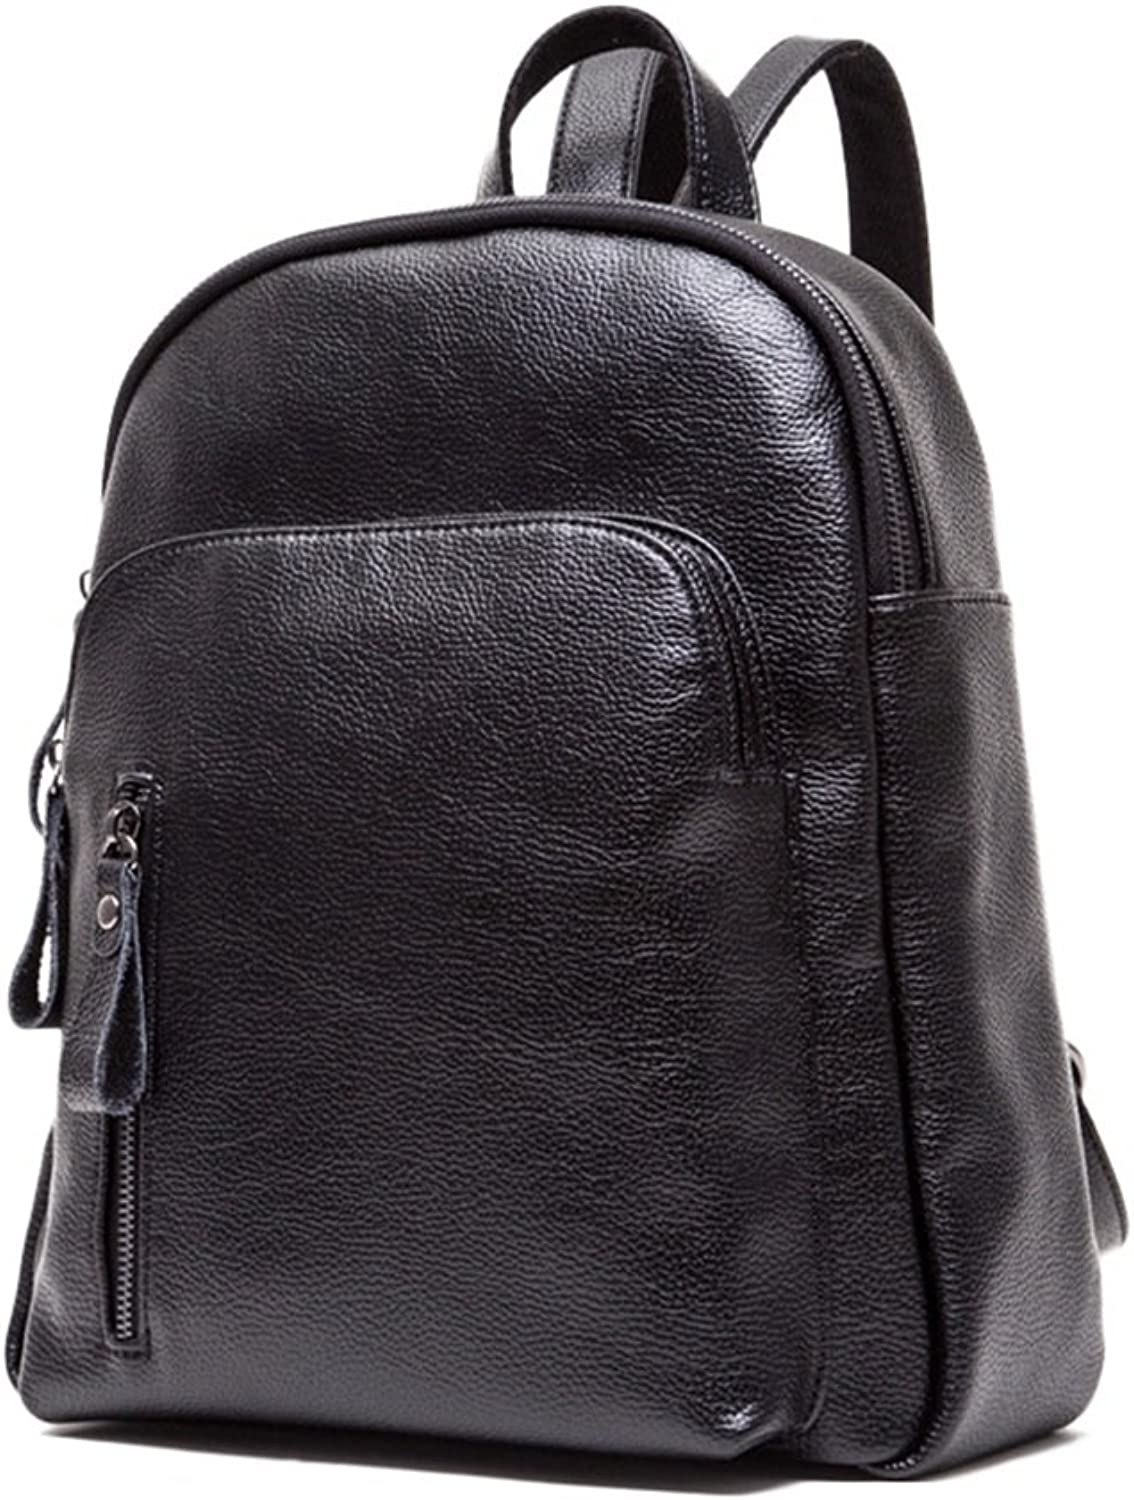 Itemship Small PU Shoulders Backpack Ms Leisure daily Backpack 32  27  12cm